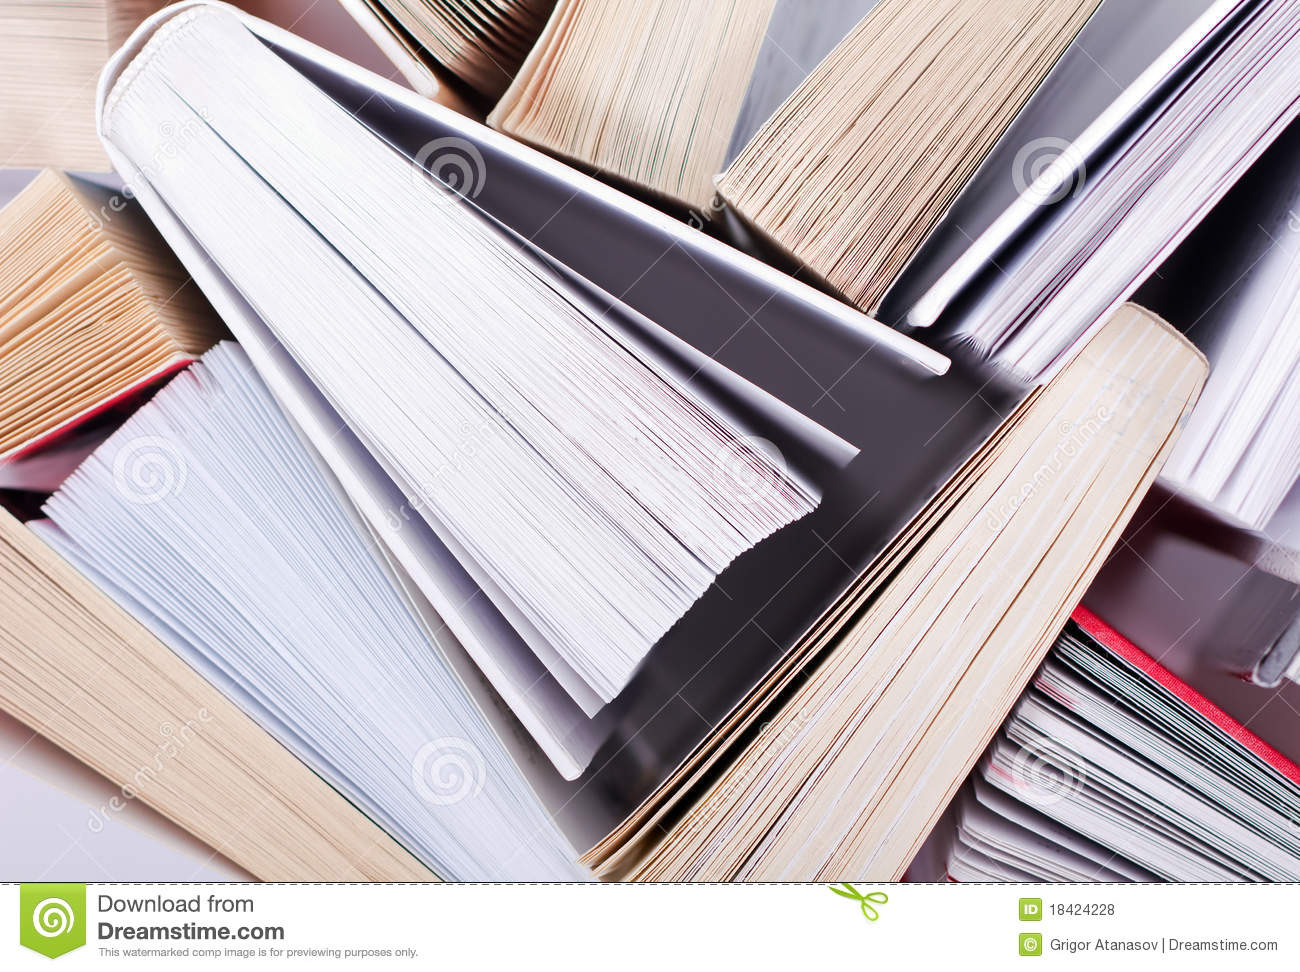 Download Books stock photo. Image of leisure, books, above, study - 18424228